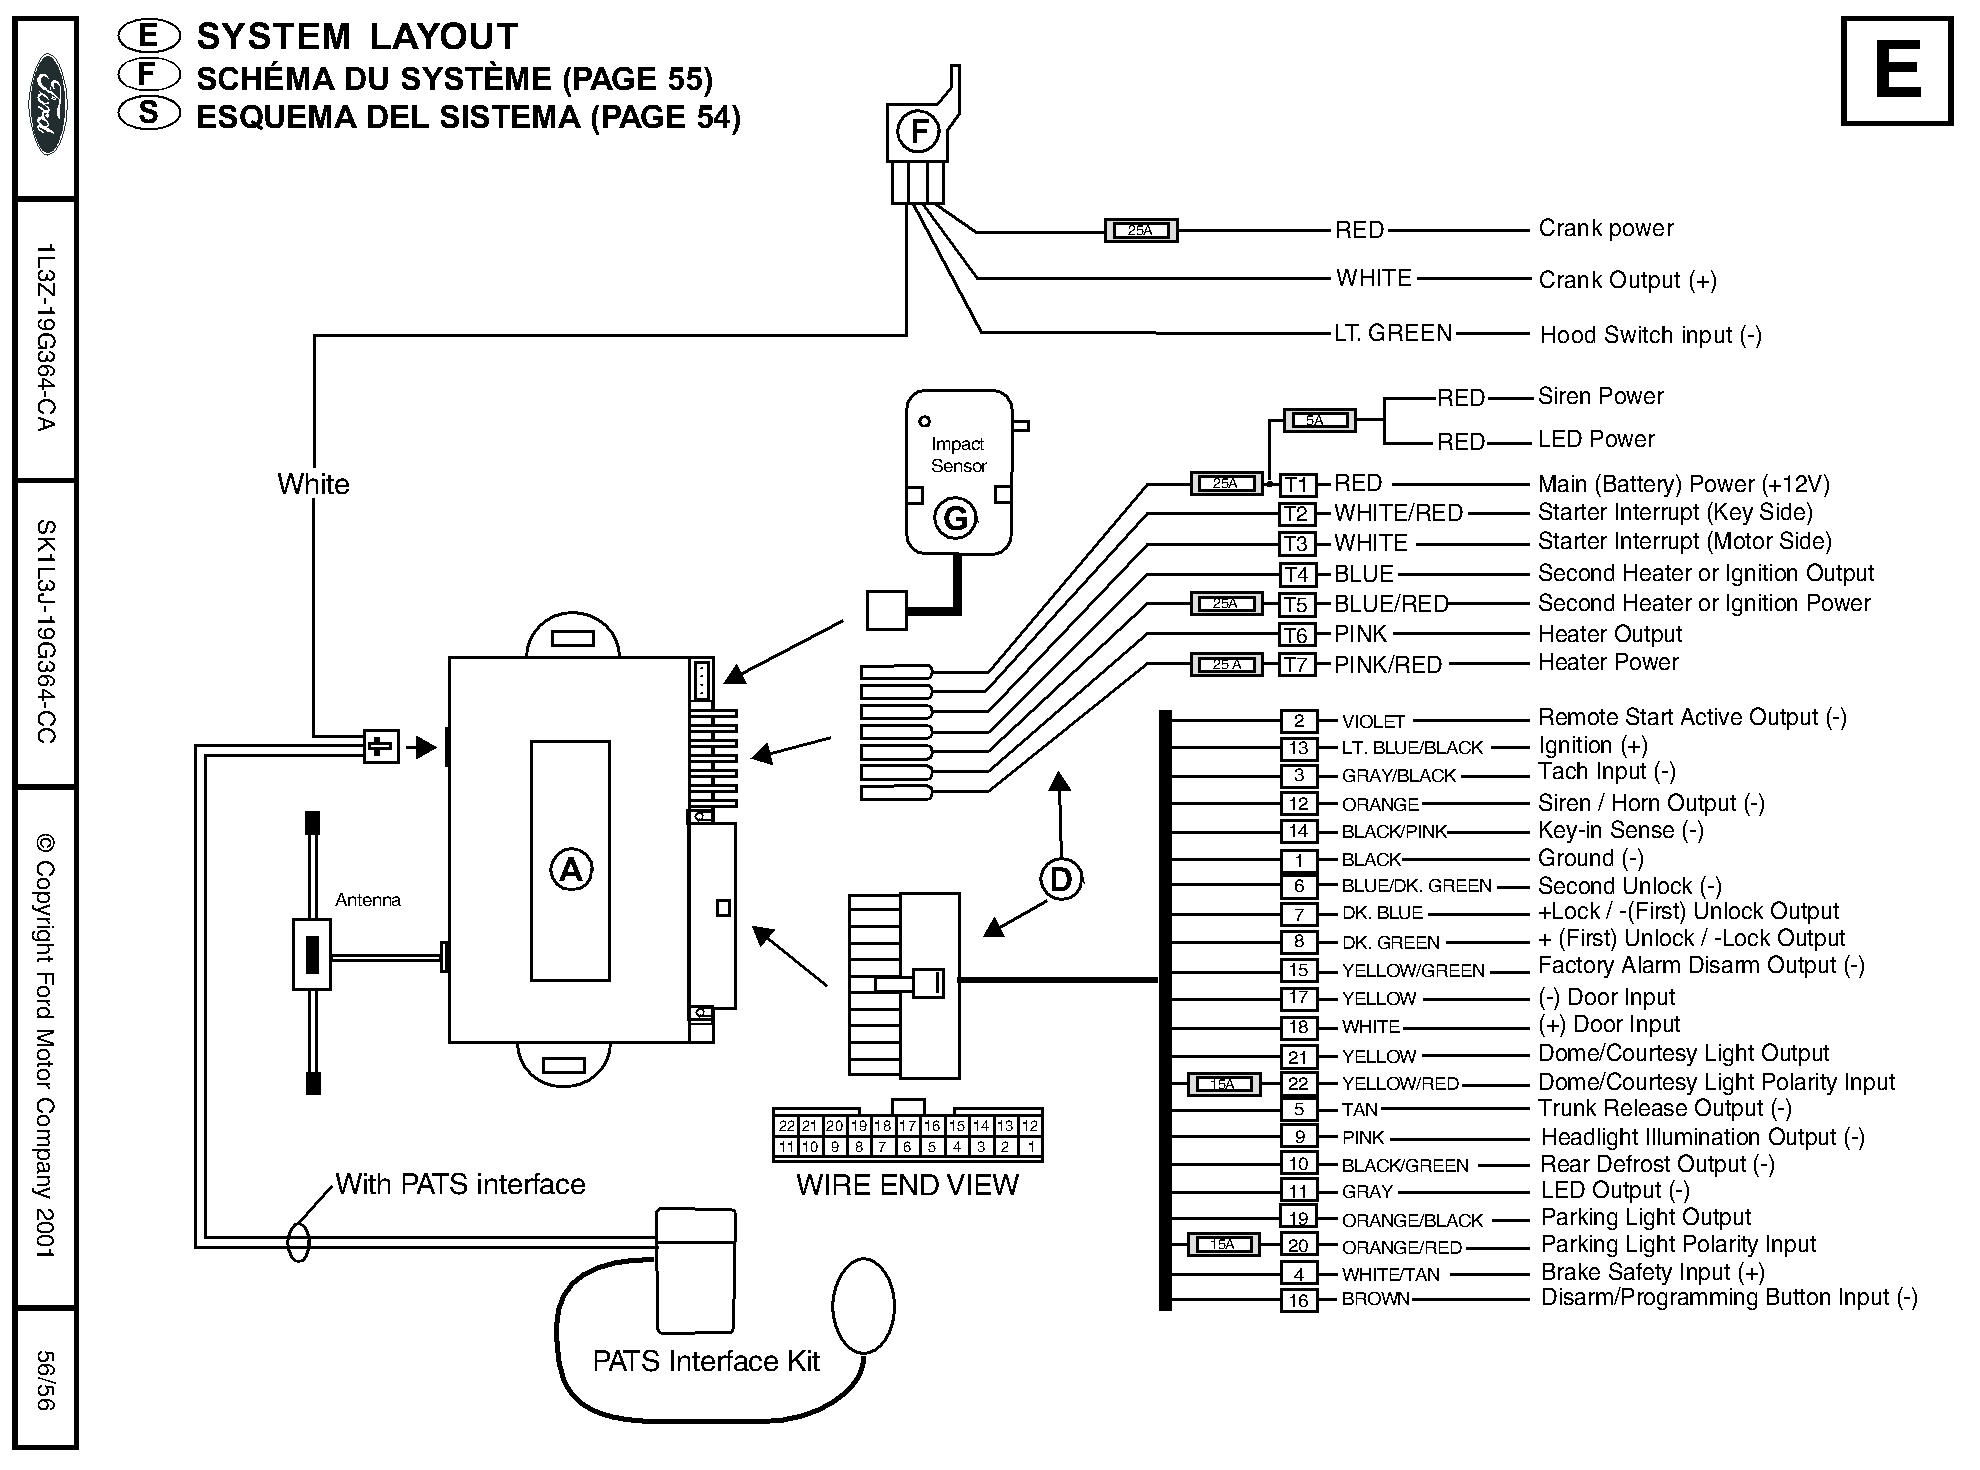 dodge ram radio wiring diagram with Index on 2io85 Need Wiring Schematic 1997 Dodge Grand Caravan 3 8 additionally 80 2010 09 08 221716 1 On 98 Ford F150 Wiring Diagram also Wiring further Splendide Wiring Diagram additionally Discussion C21610 ds639749.